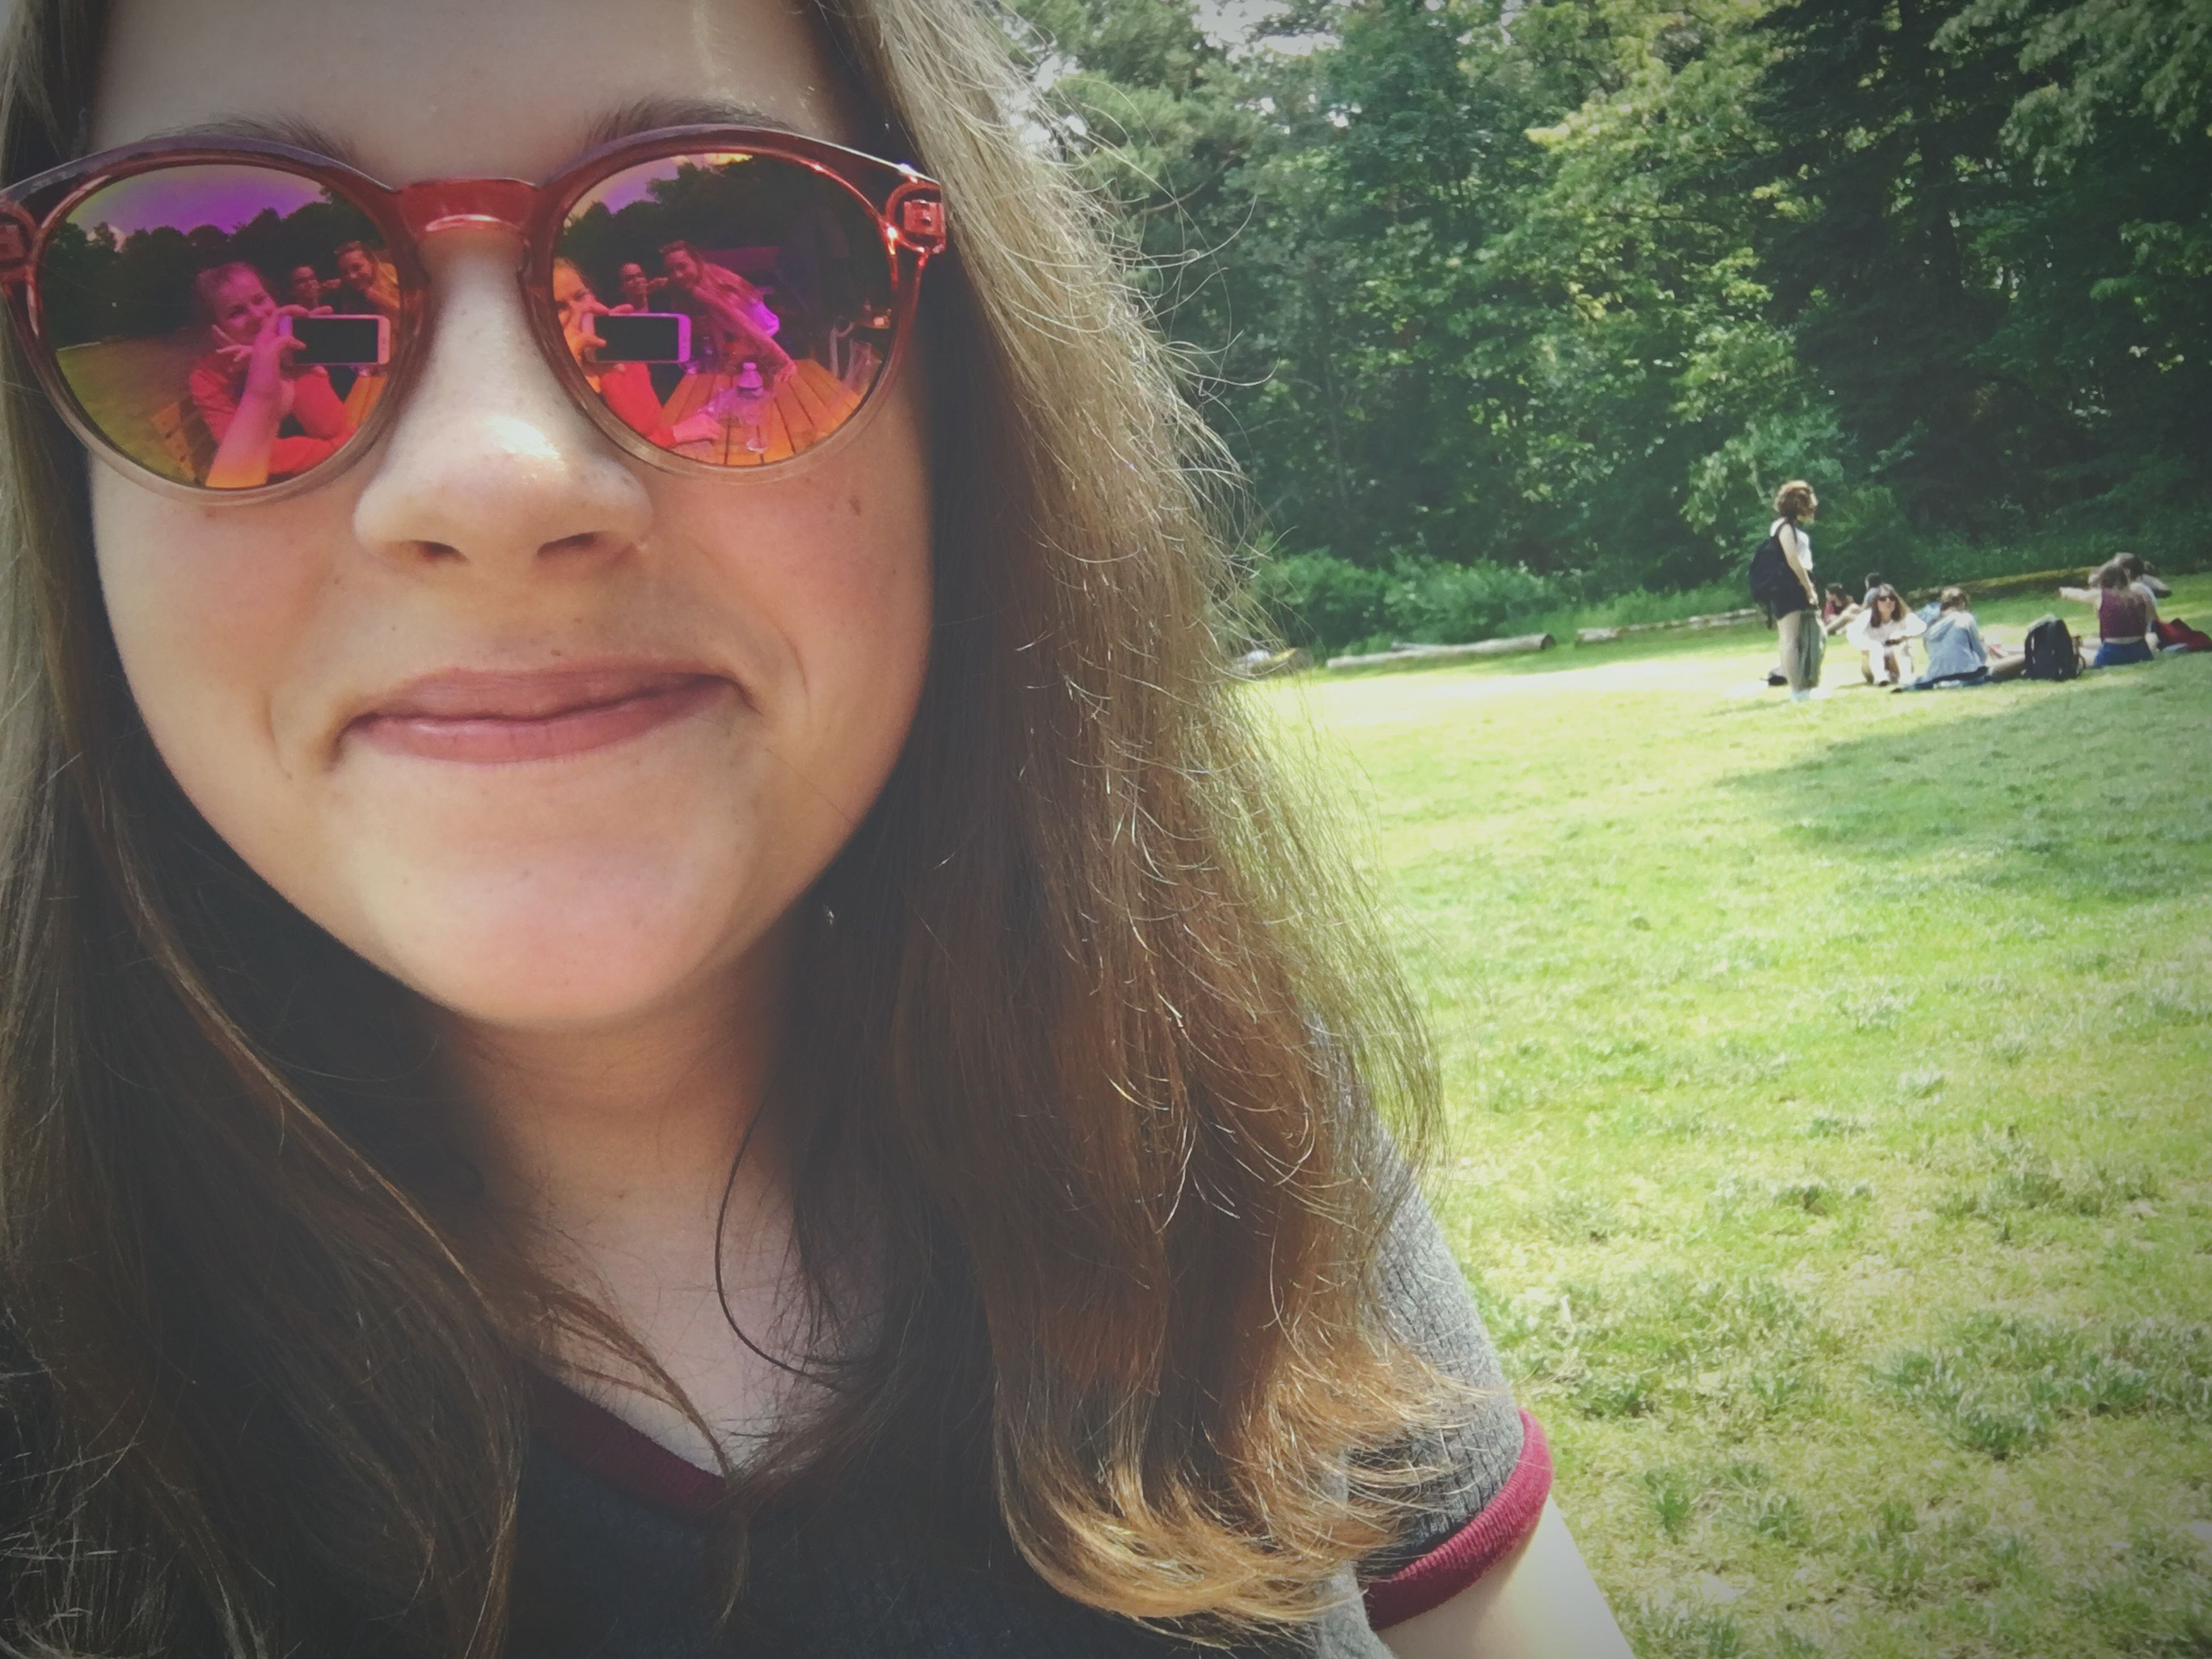 person, portrait, lifestyles, looking at camera, young adult, leisure activity, young women, headshot, smiling, front view, sunglasses, happiness, close-up, long hair, girls, grass, focus on foreground